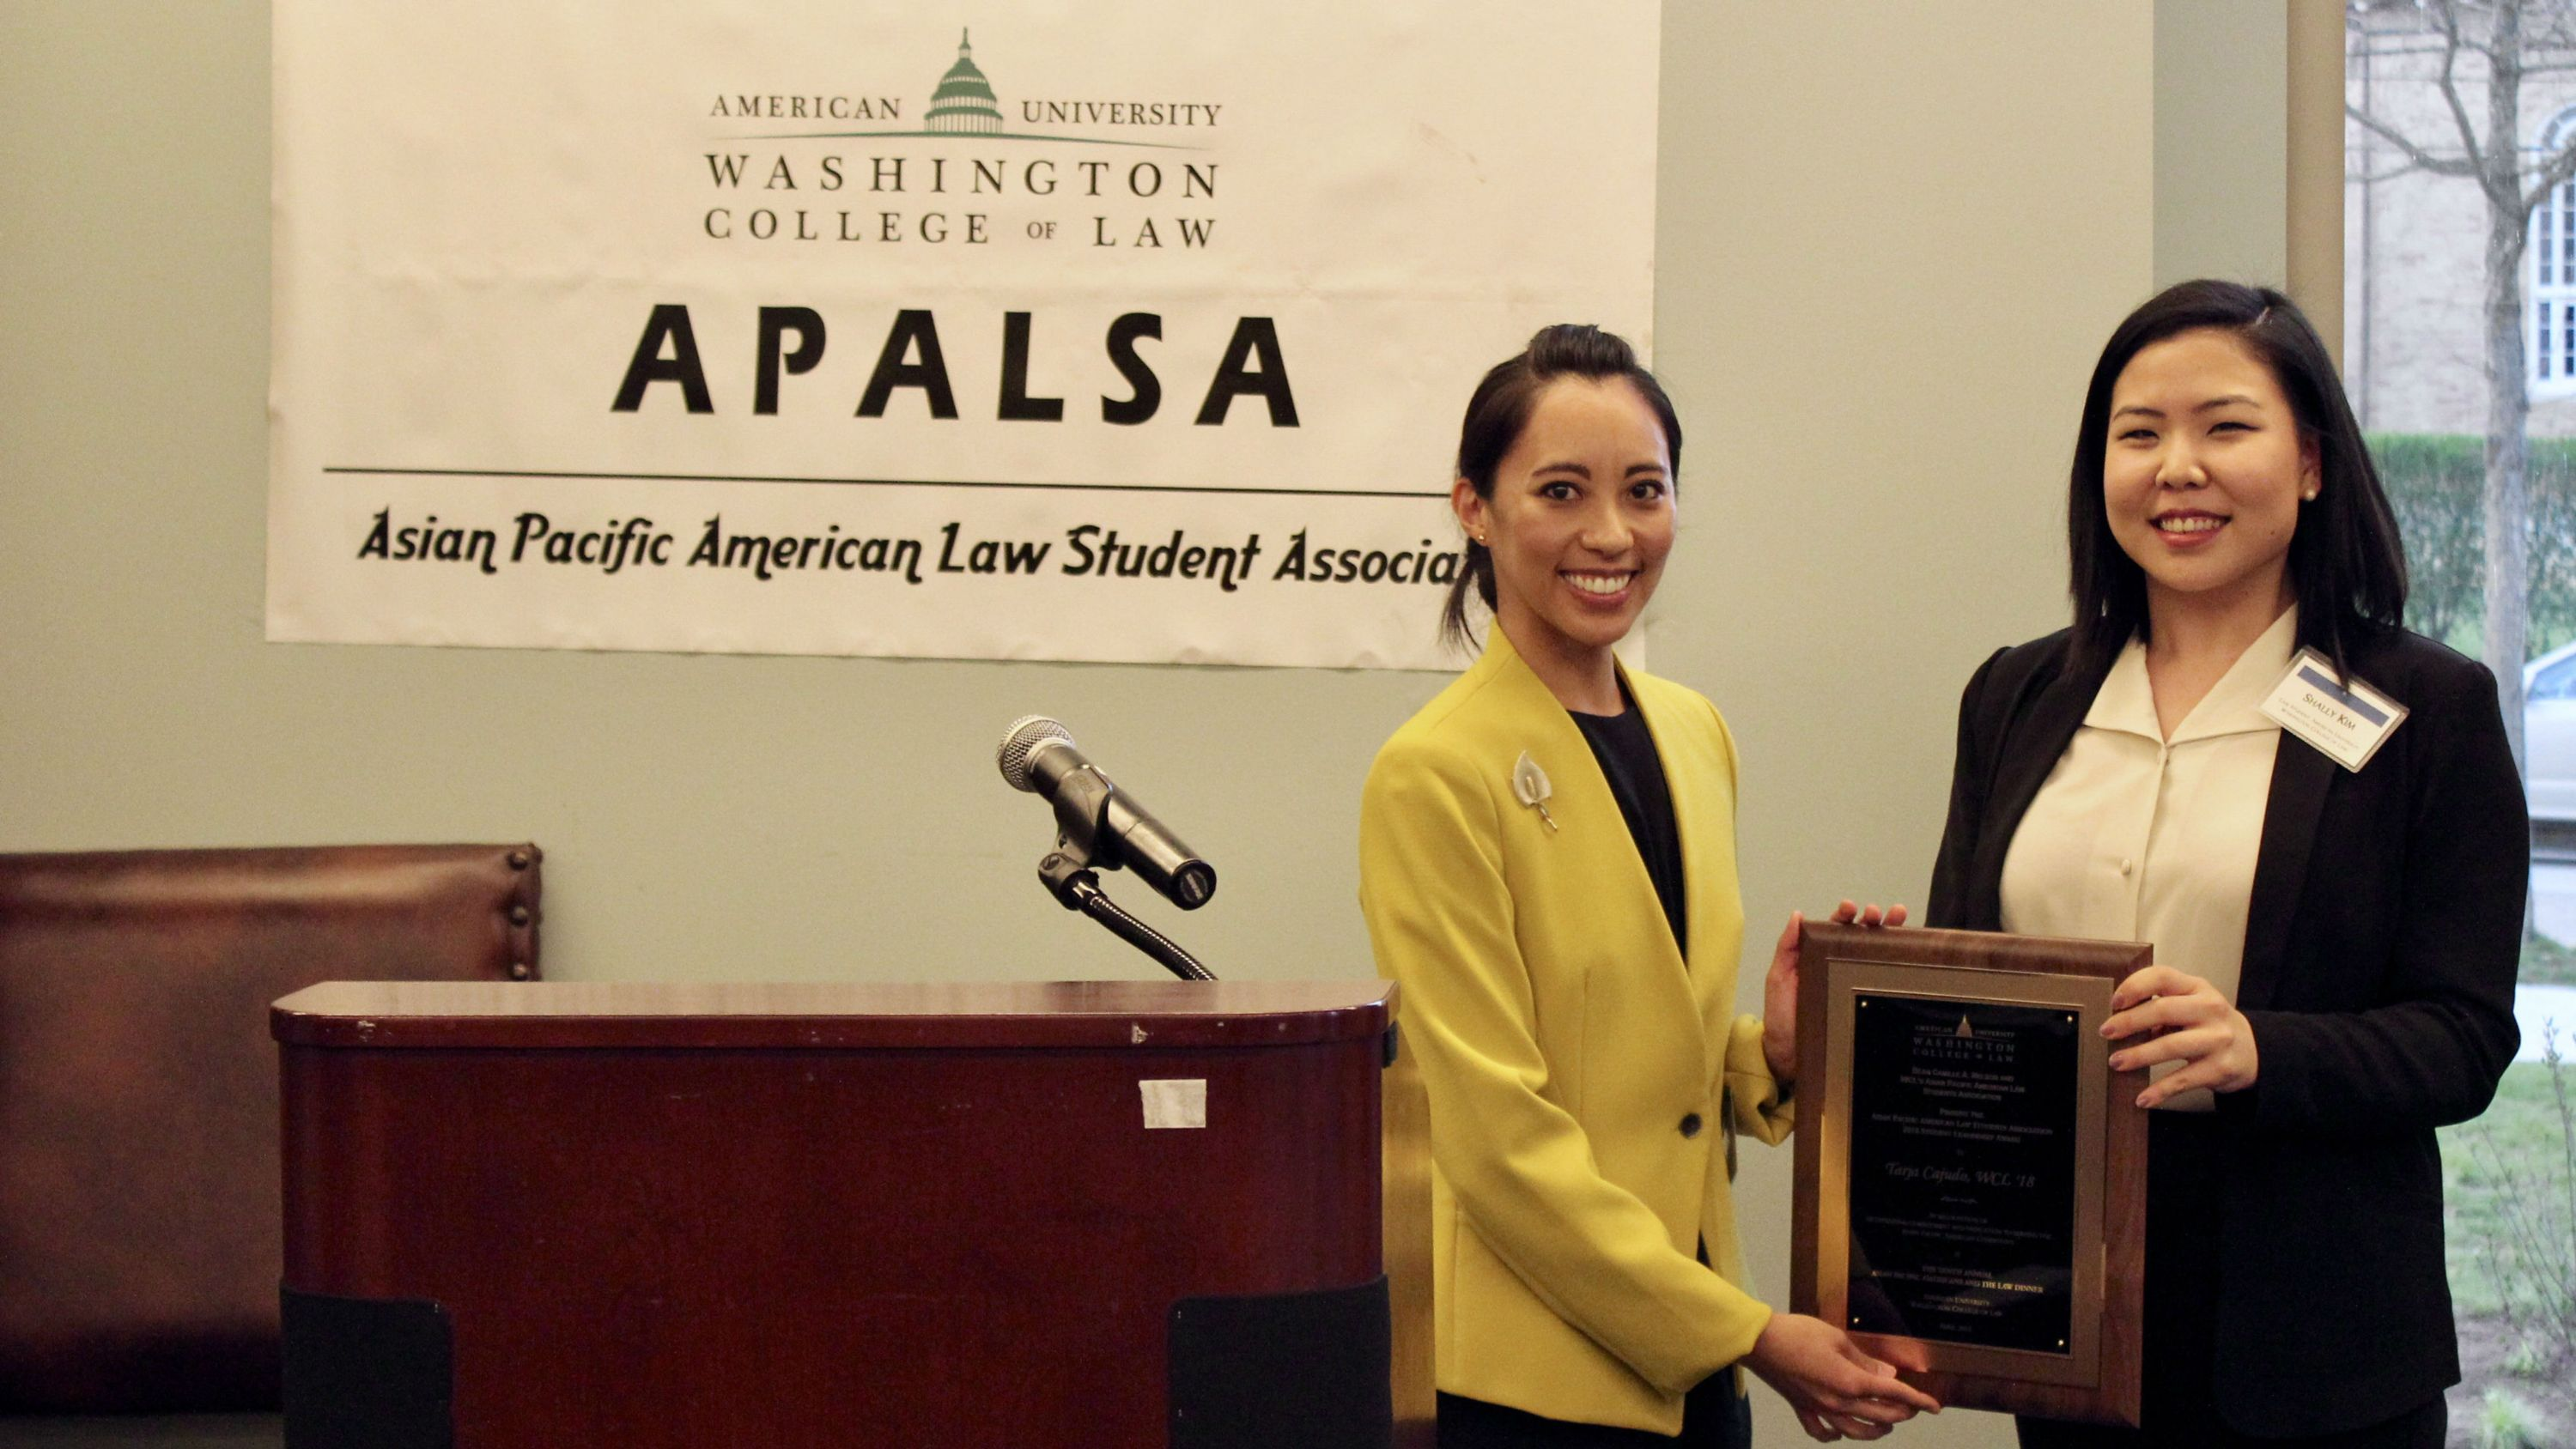 APALSA's President-Elect Shally Kim, JD Candidate '19, presenting the APALSA Student Leadership award to Tarja Cajudo, JD Candidate '18